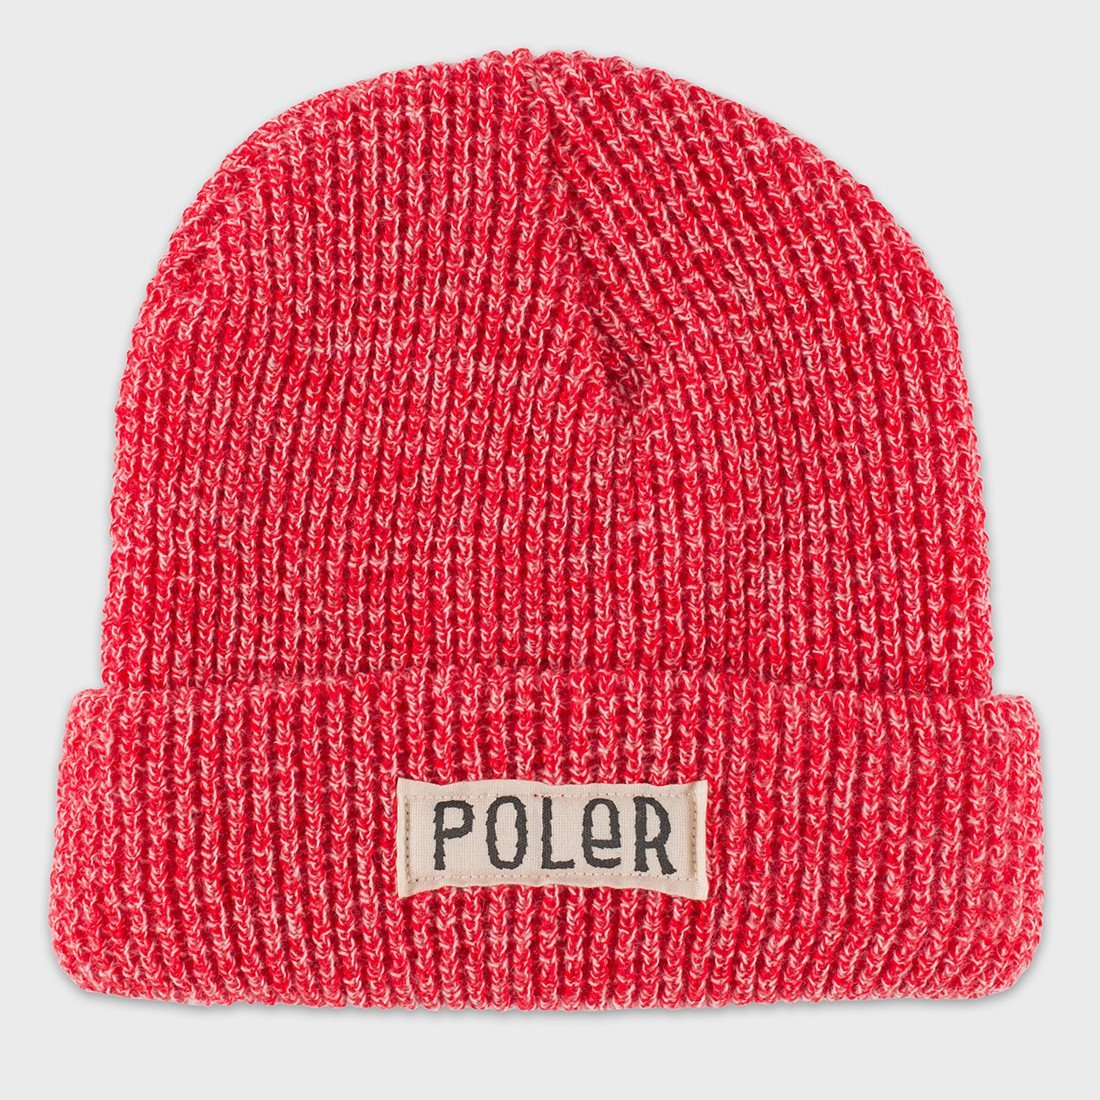 Poler Workerman Beanie Red Heather